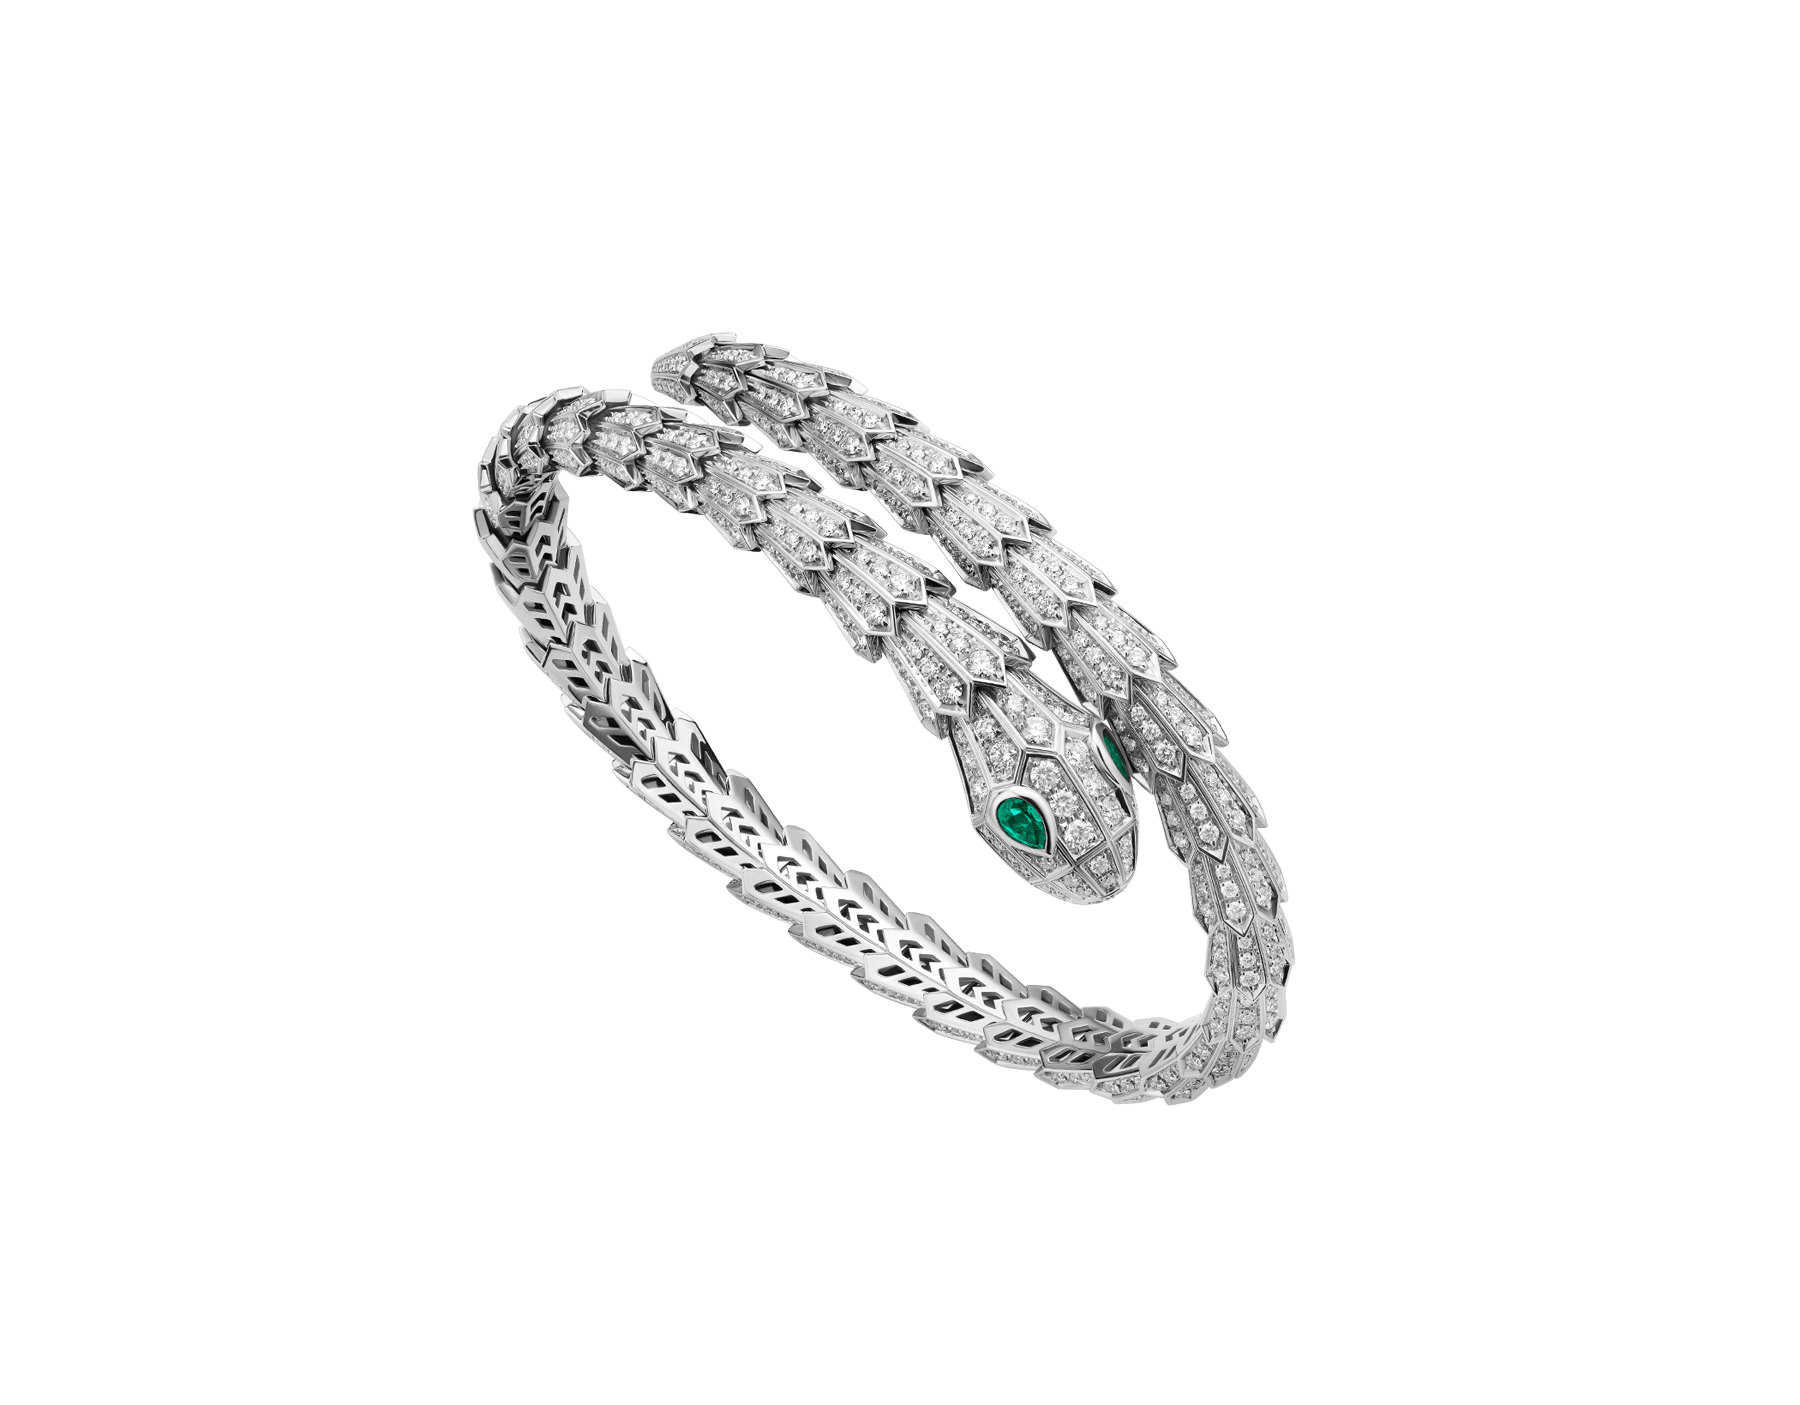 Serpenti 18 kt white gold bracelet set with pavé diamonds and two emerald eyes. BR858734 image 1